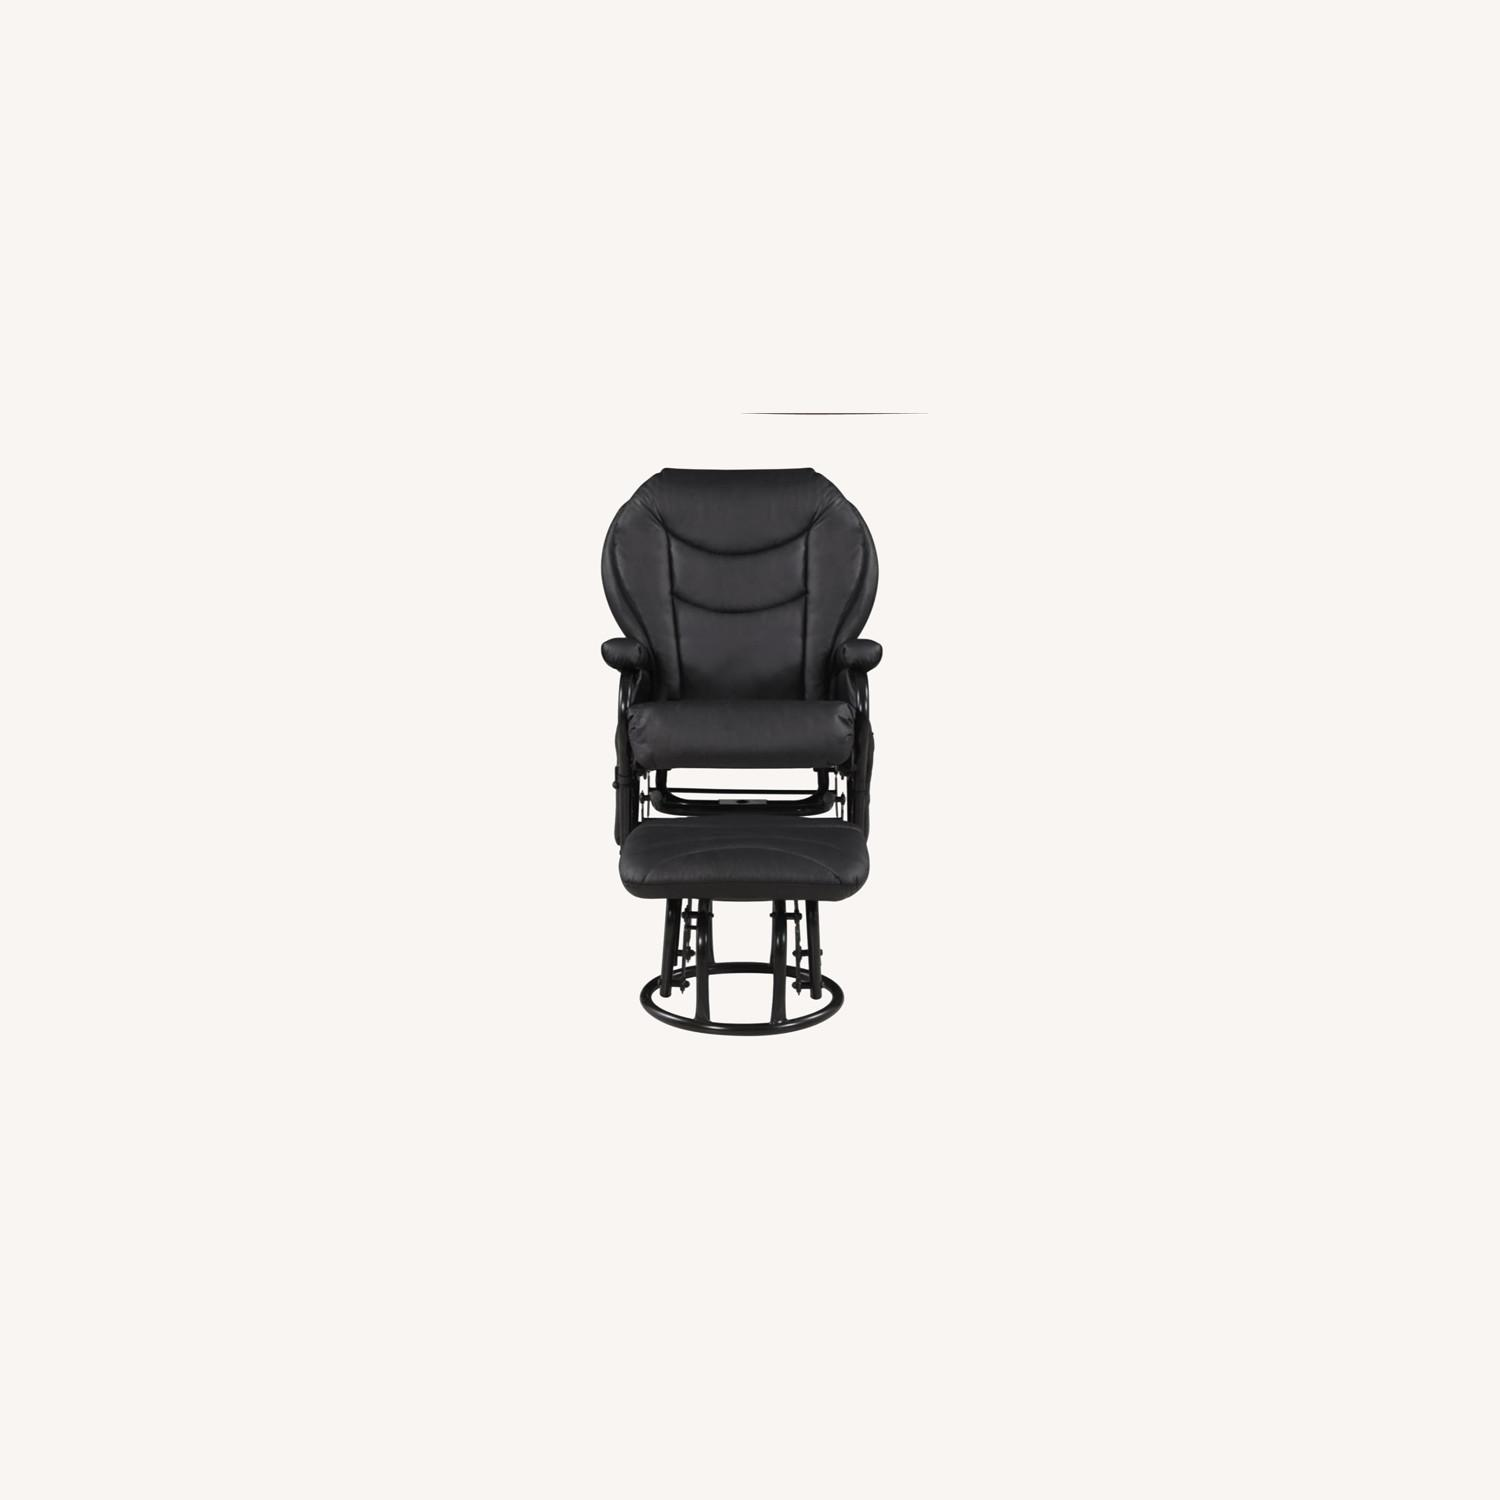 Glider W/ Ottoman In Black Leatherette Upholstery - image-6